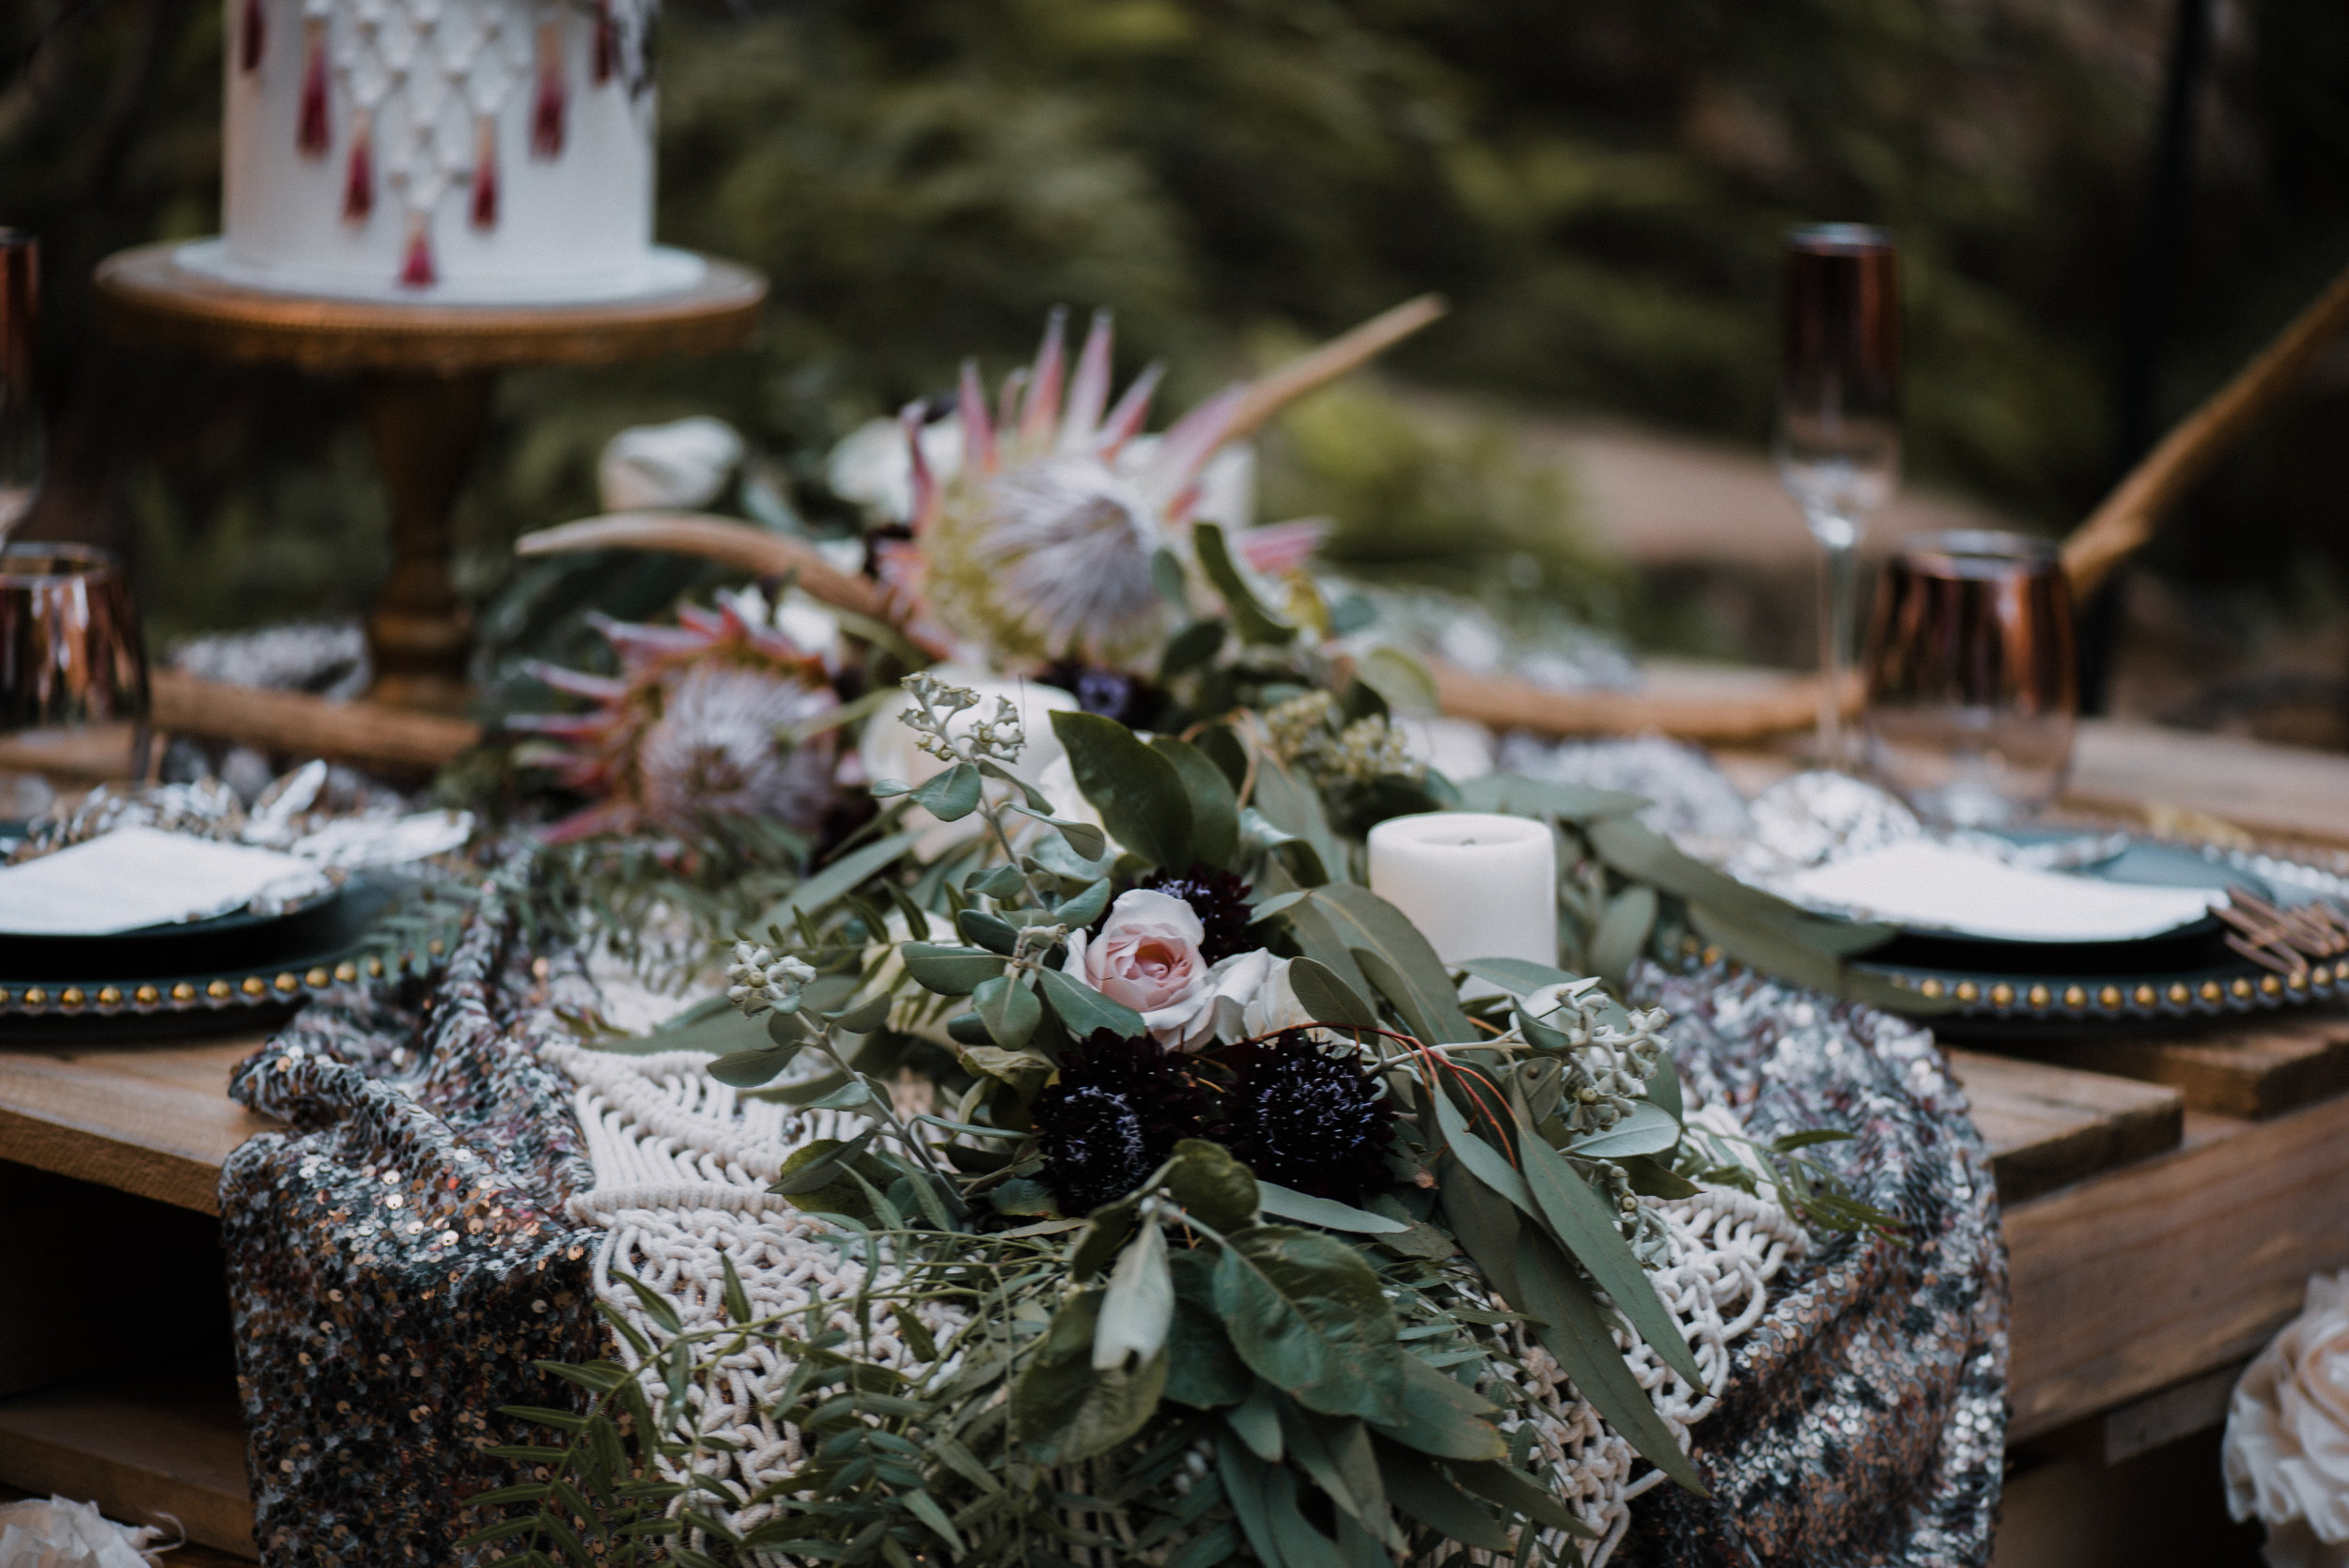 Nellies Glen Styled Shoot-031217-69.jpg